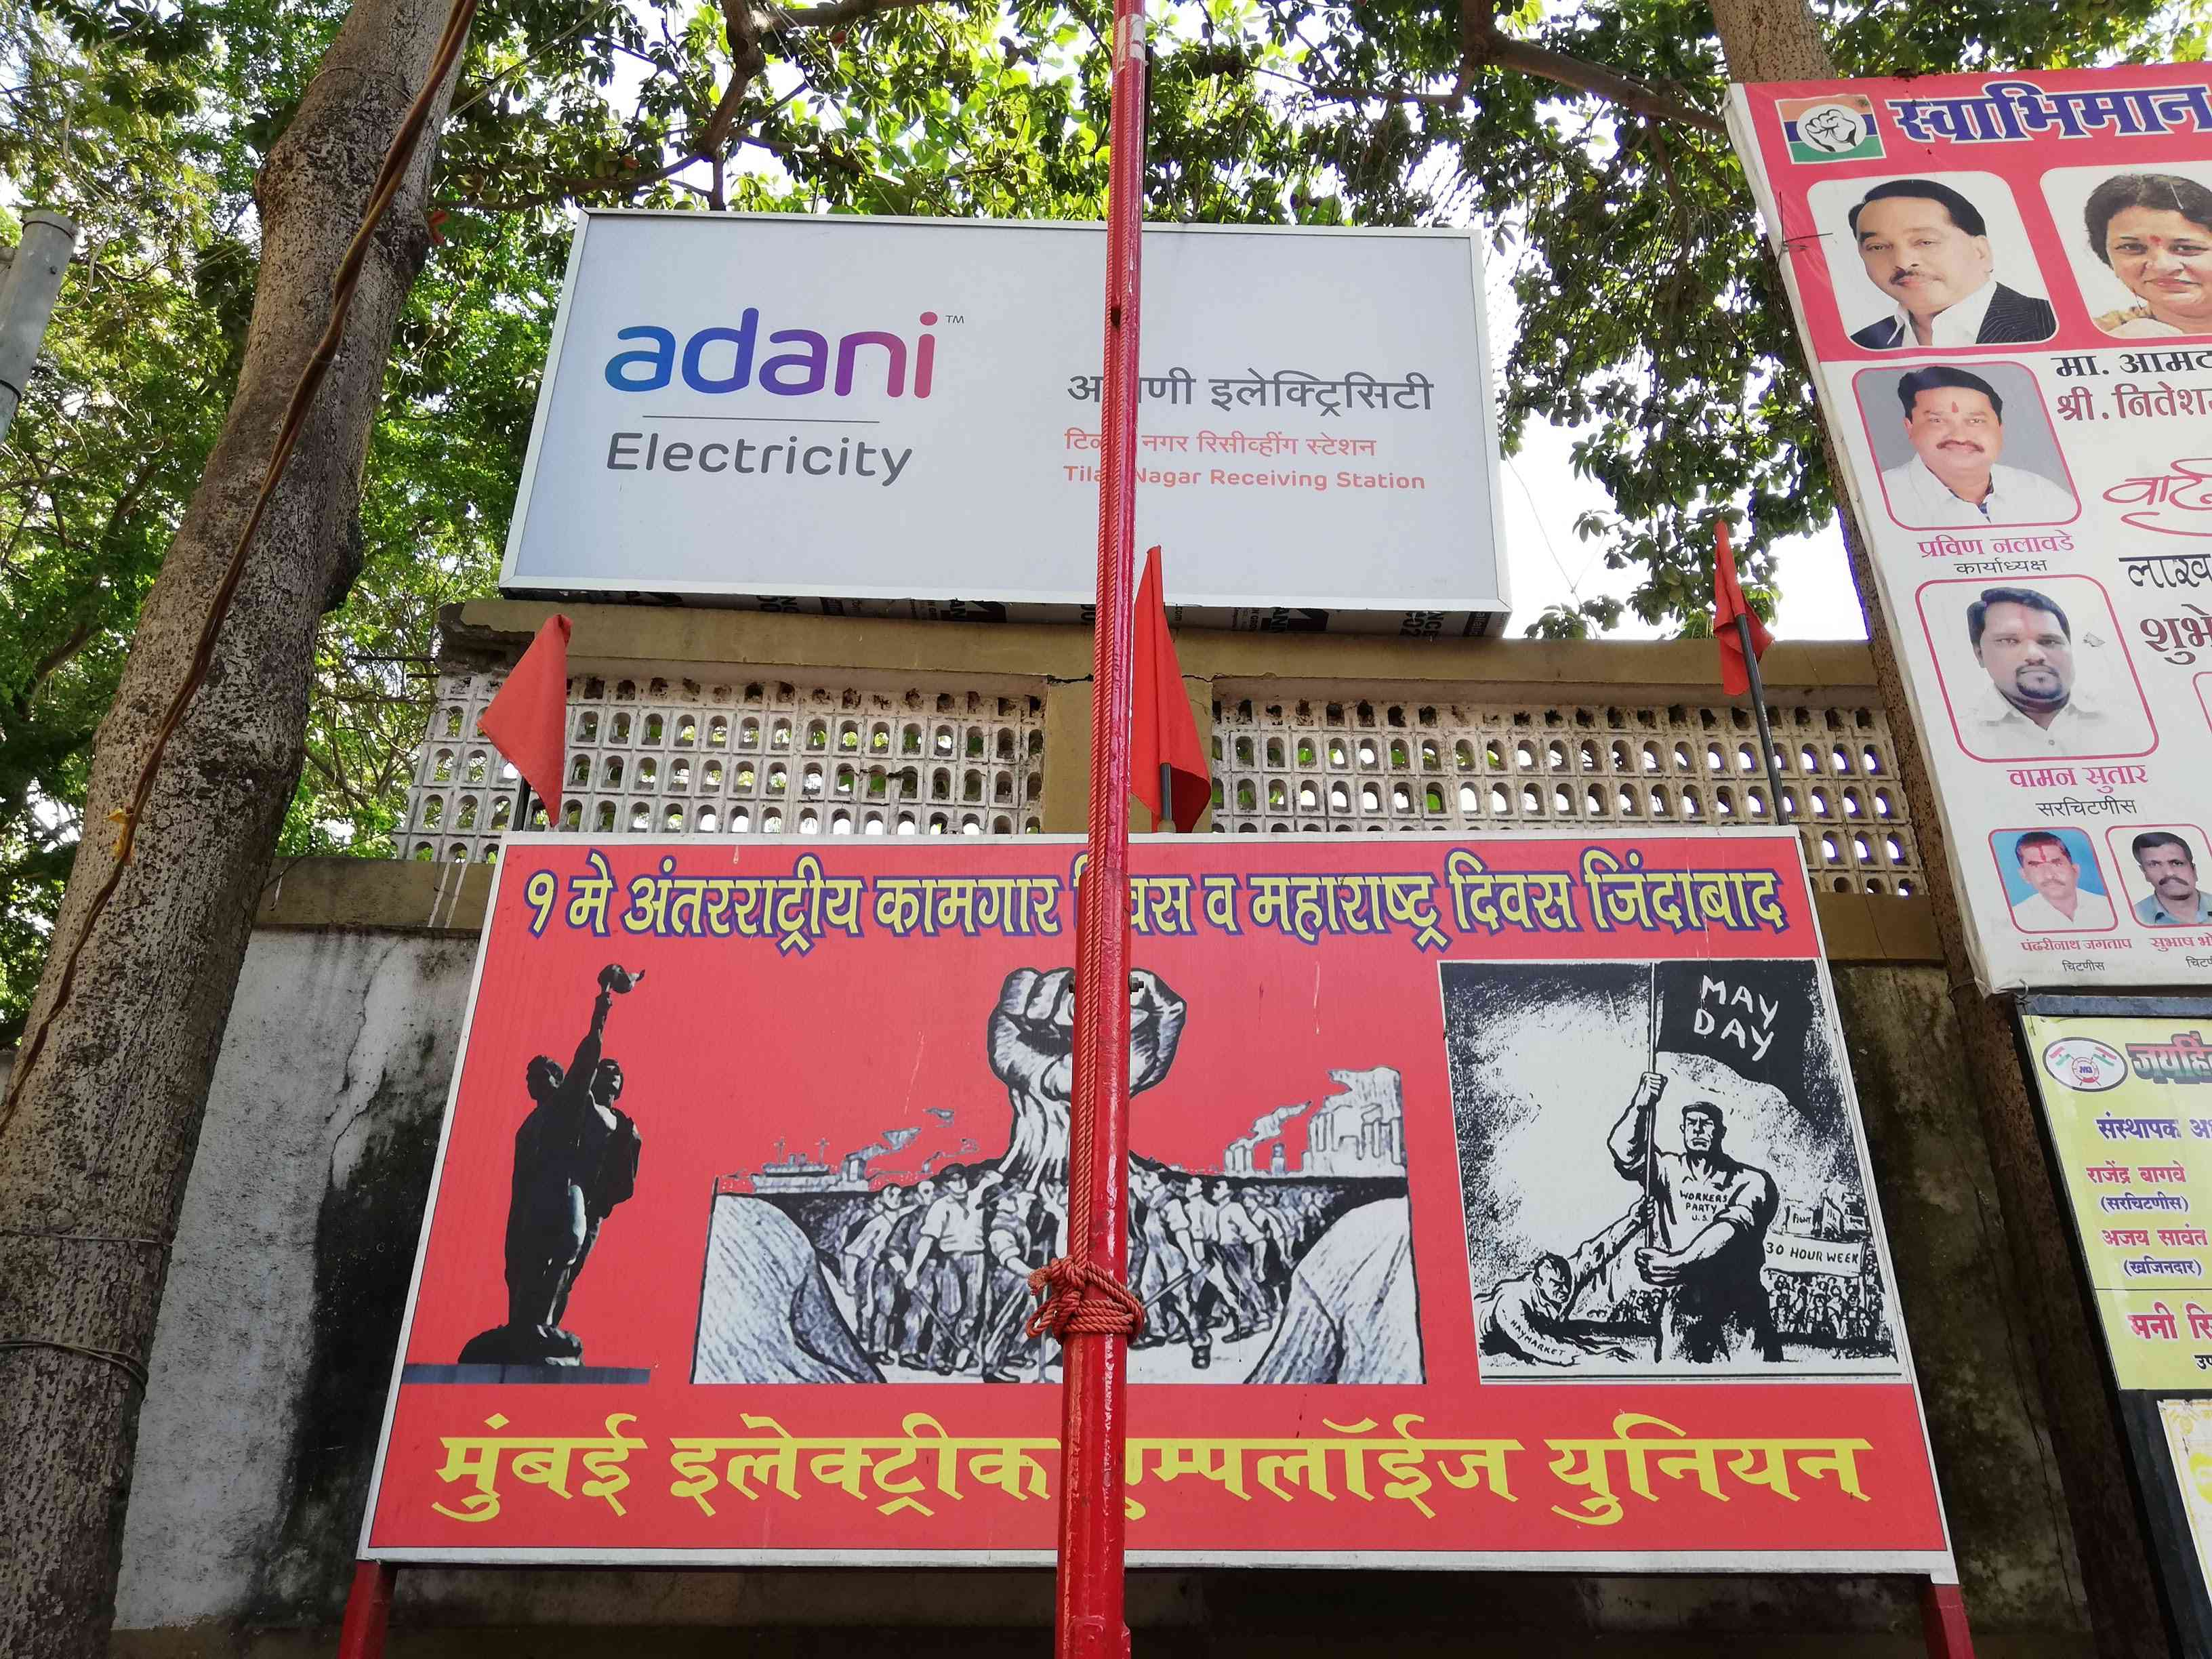 A poster of the Mumbai Electric Employees Union behind a plain red flag hoisted in a concrete block outside the Tilak Nagar office of Adani Electricity Mumbai. Photo: Mridula Chari